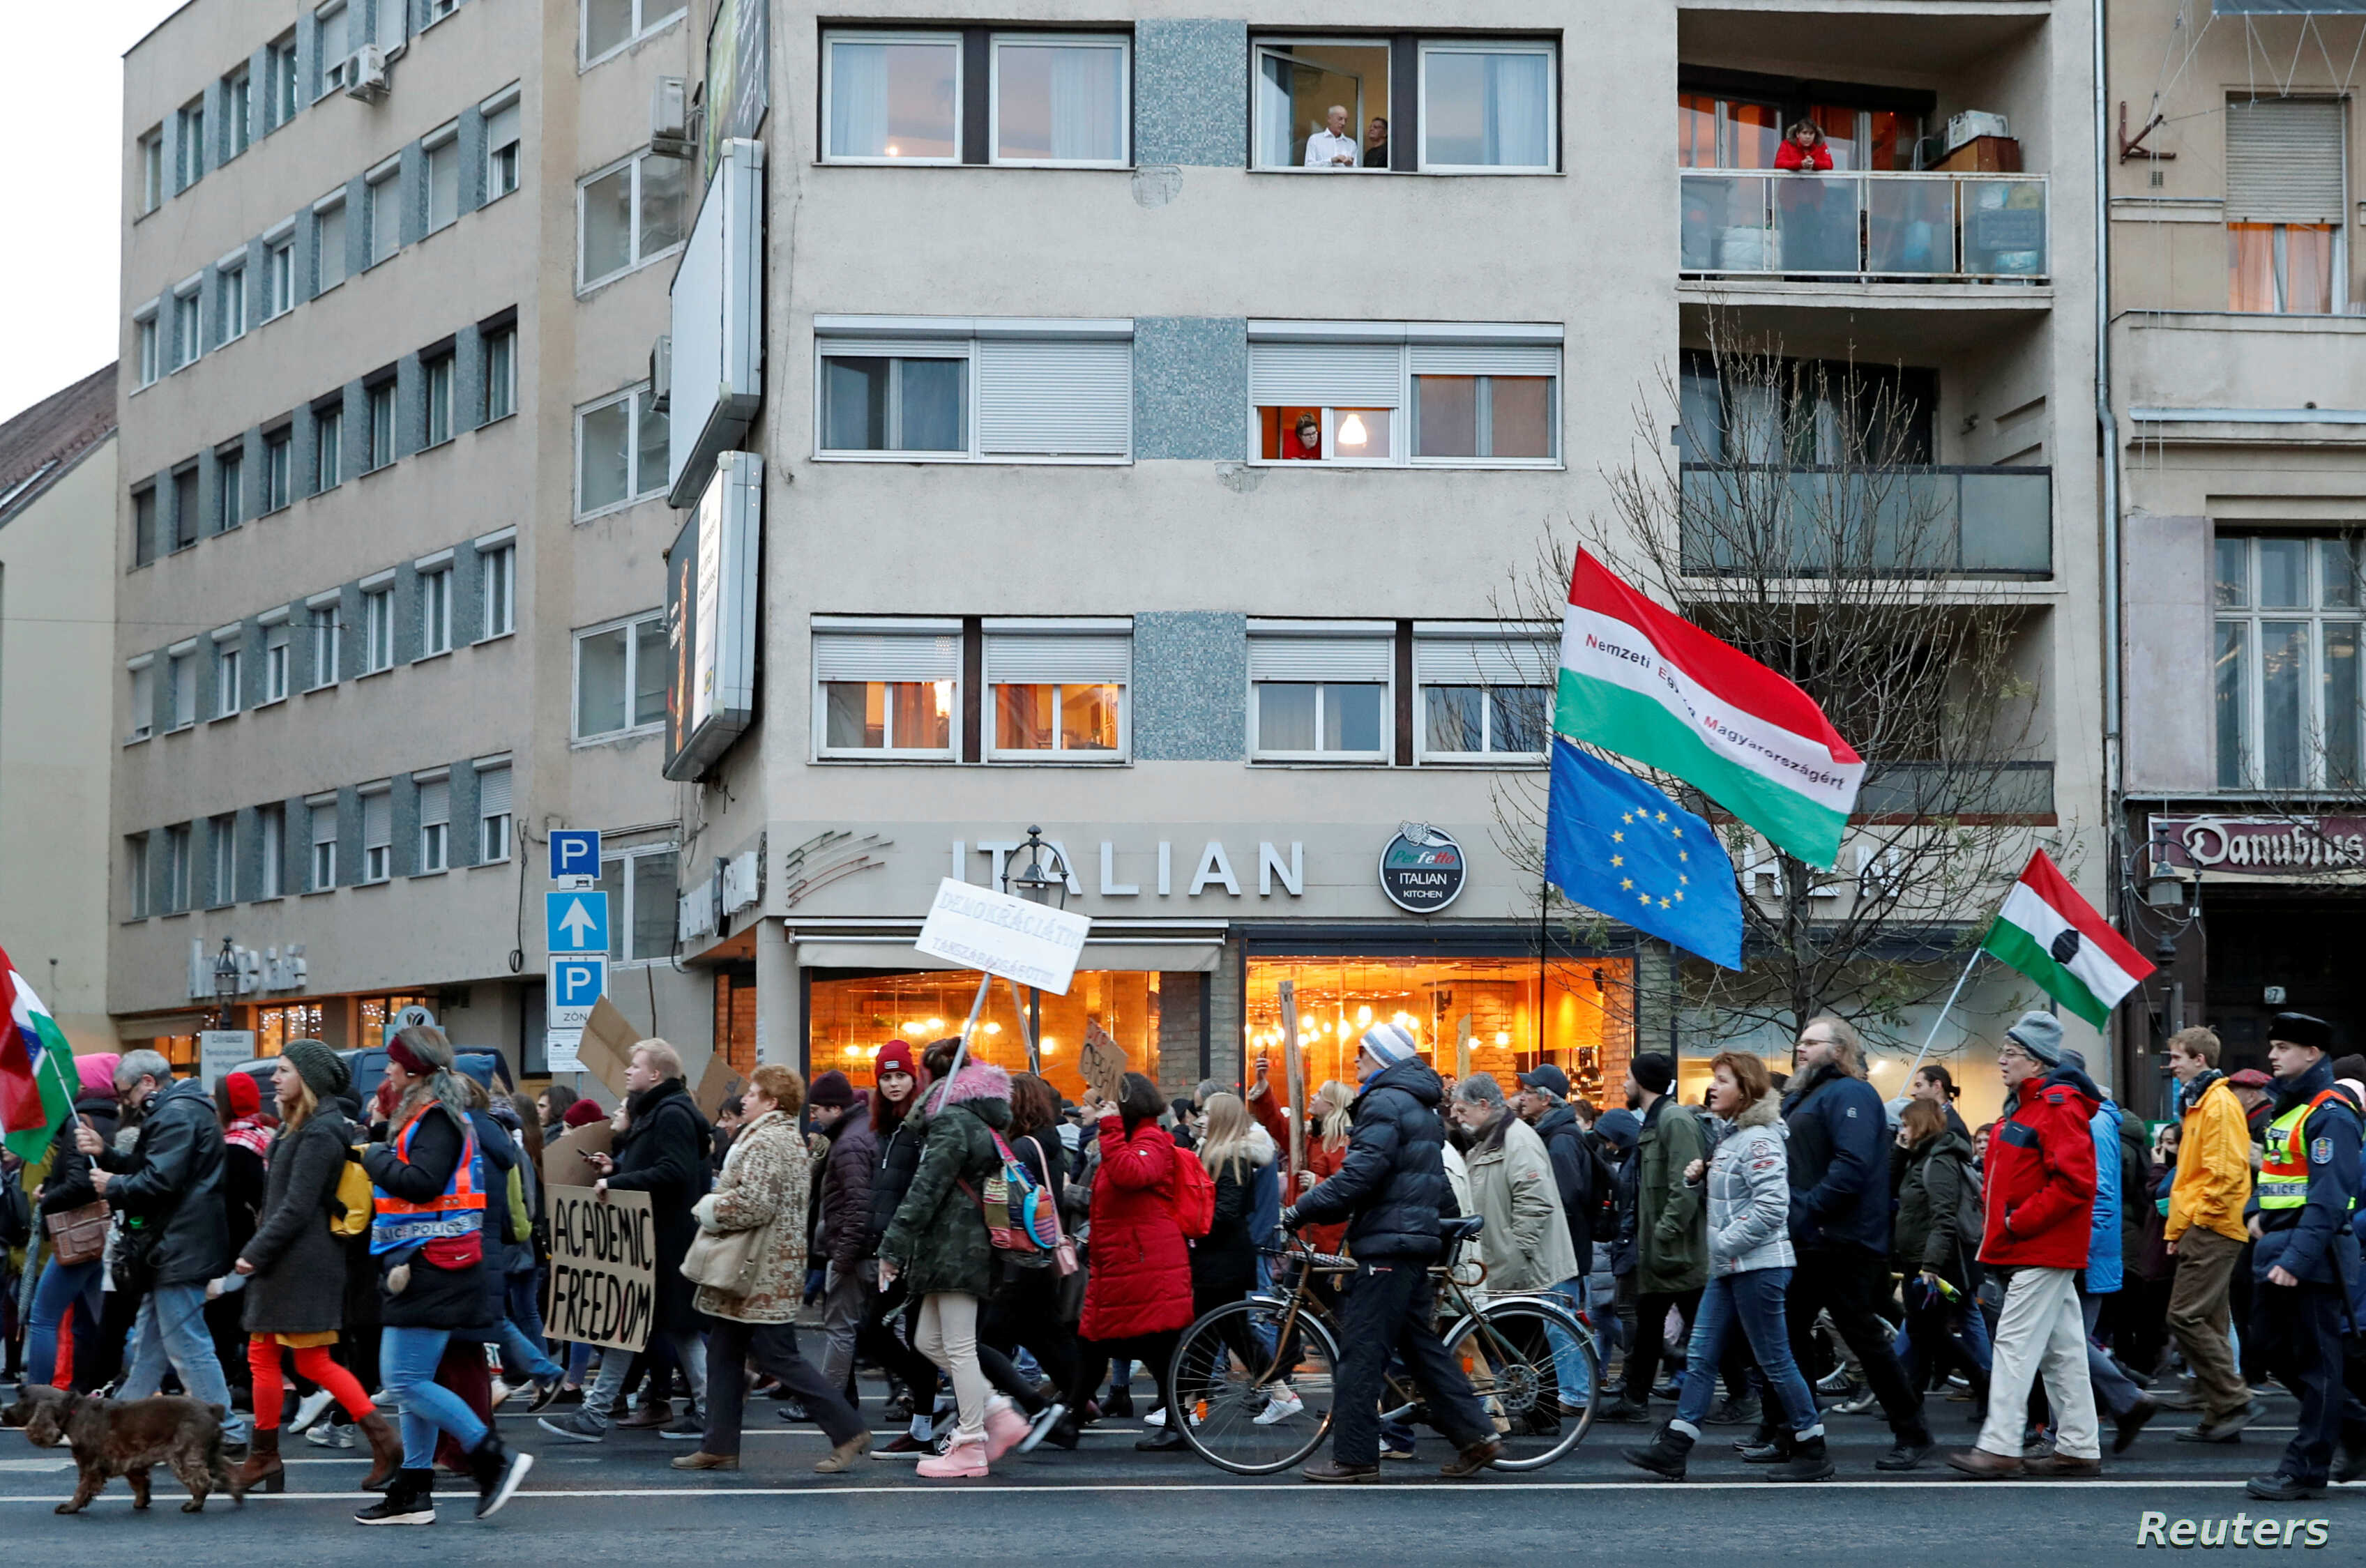 FILE - People attend a rally for the Soros-founded Central European University in Budapest, Hungary, Nov. 24, 2018.